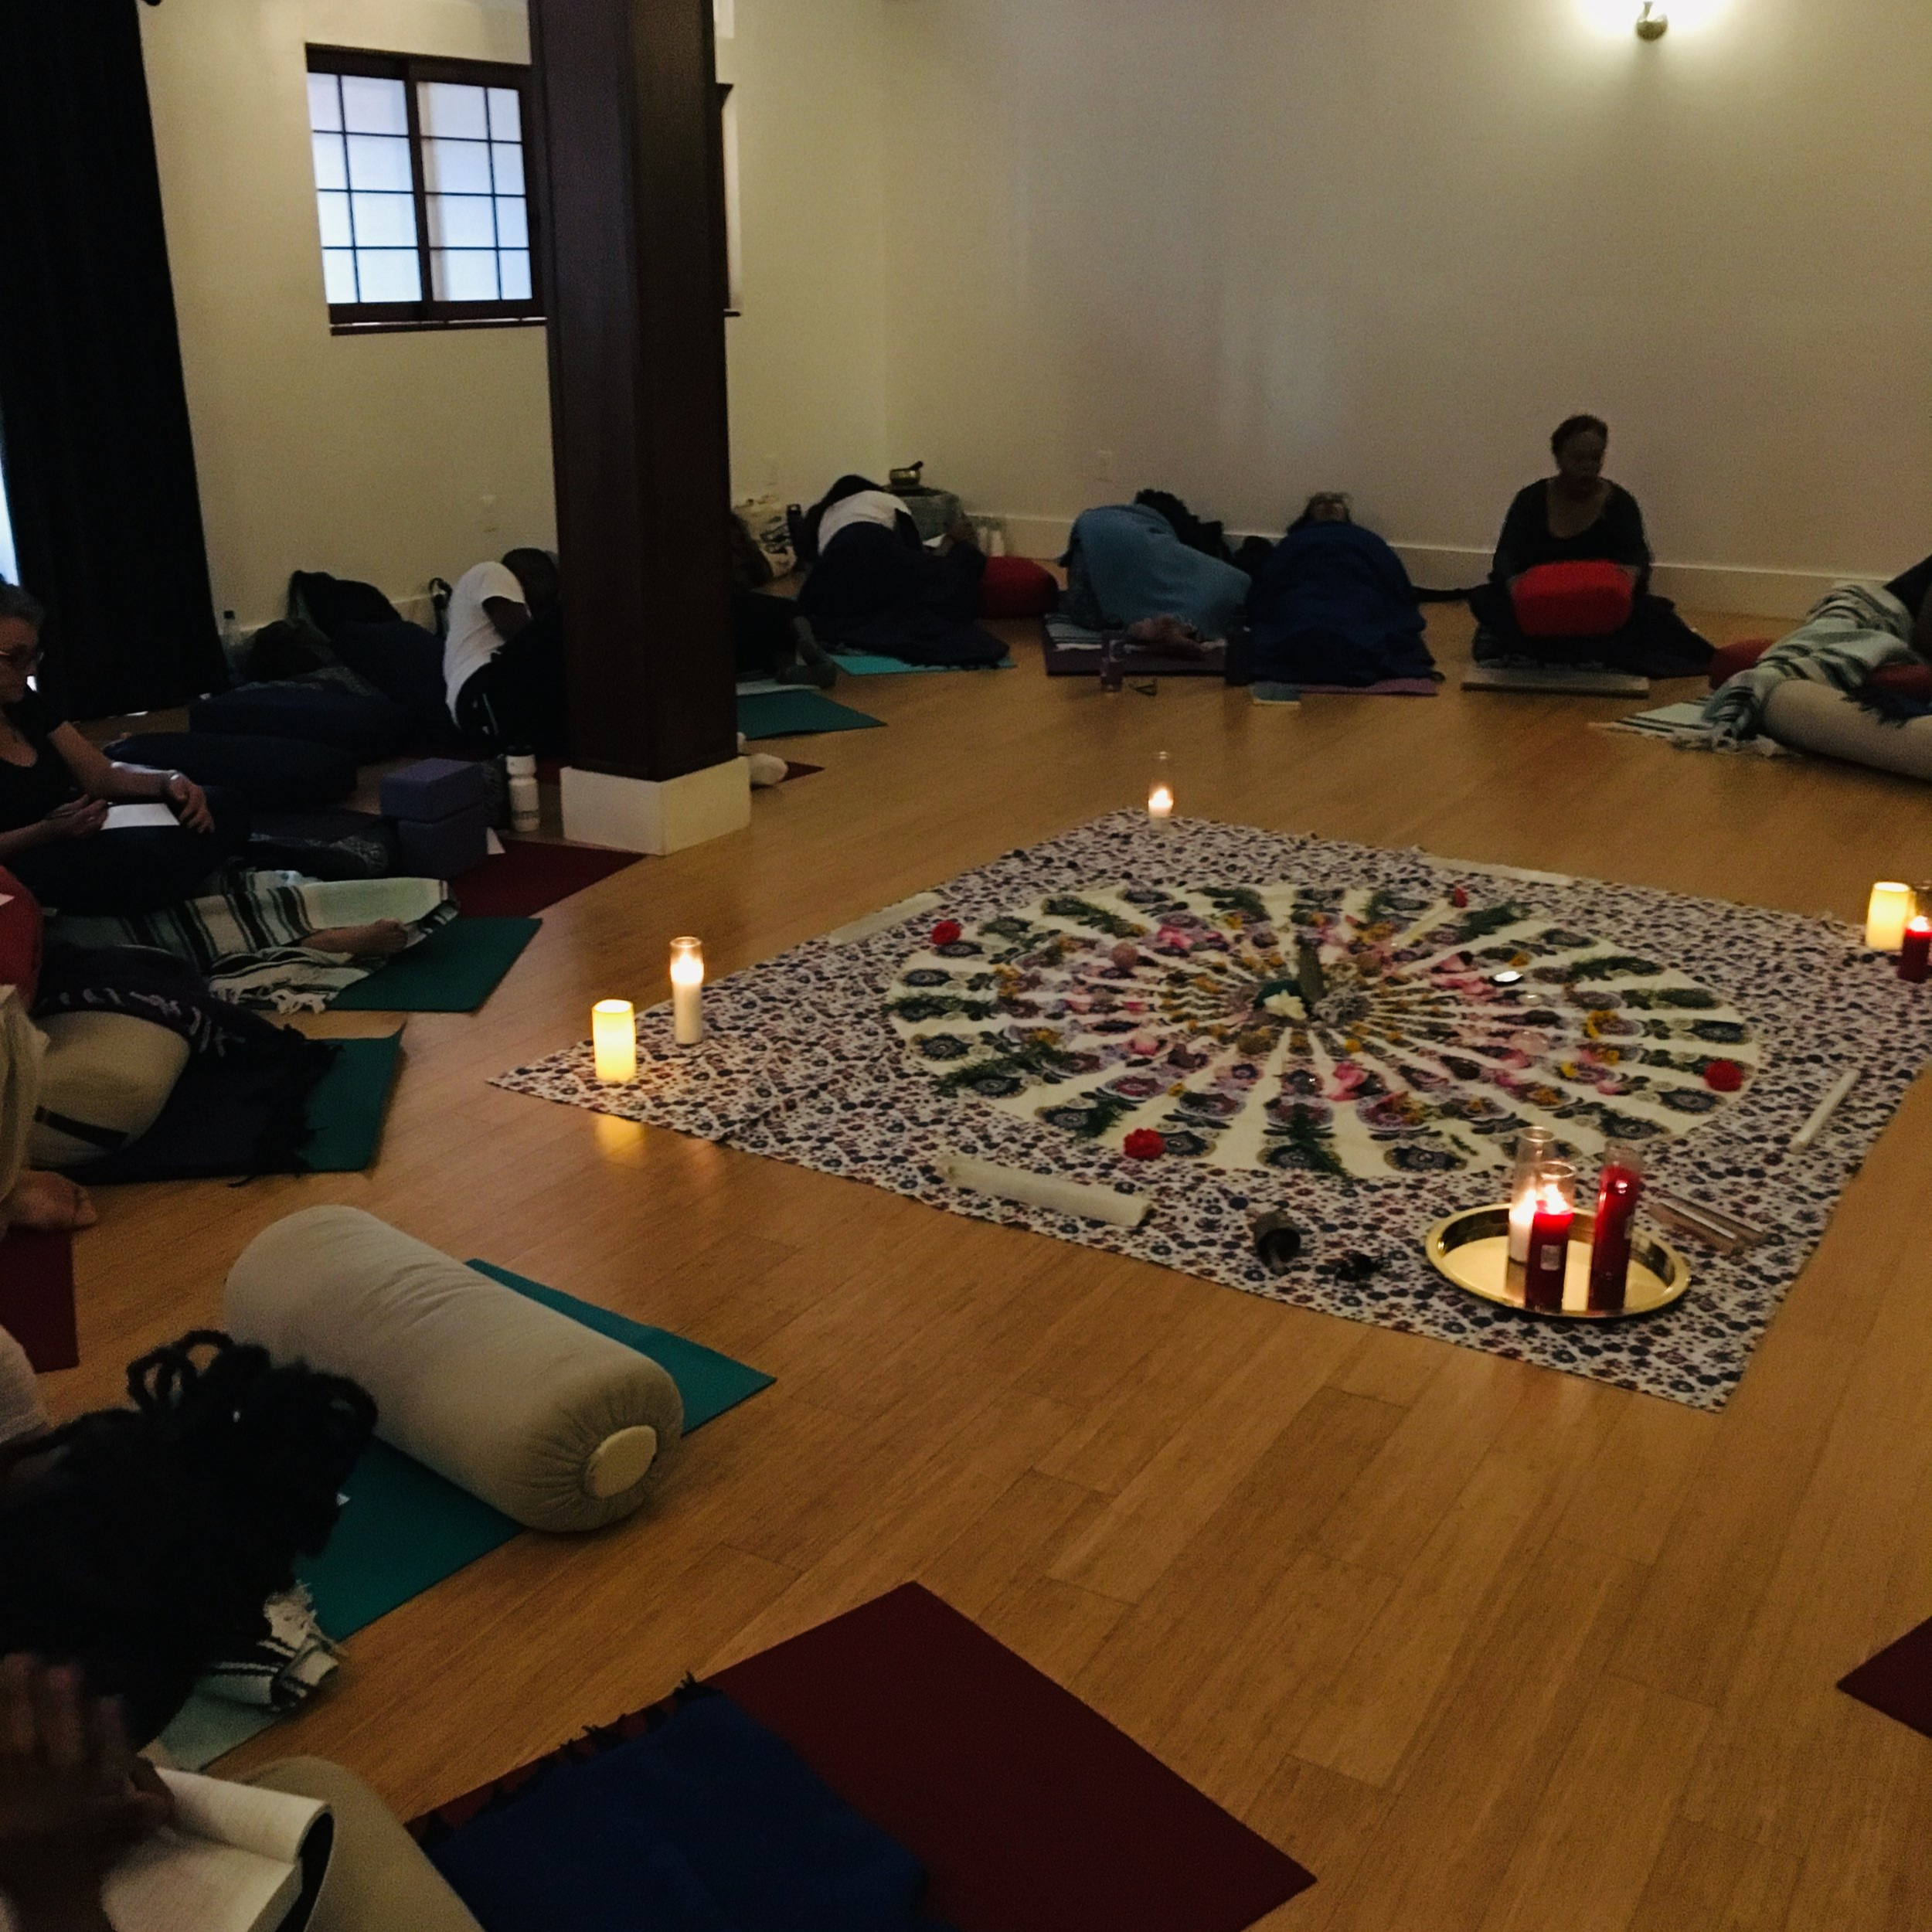 Thank you to everyone who came to Summer Solstice Ritual of Rest at  Anasa Yoga  and made it a sold-out evening! As well, thank you to everyone who cheered us on and showed interest but couldn't make it! Rest assured, more to come.